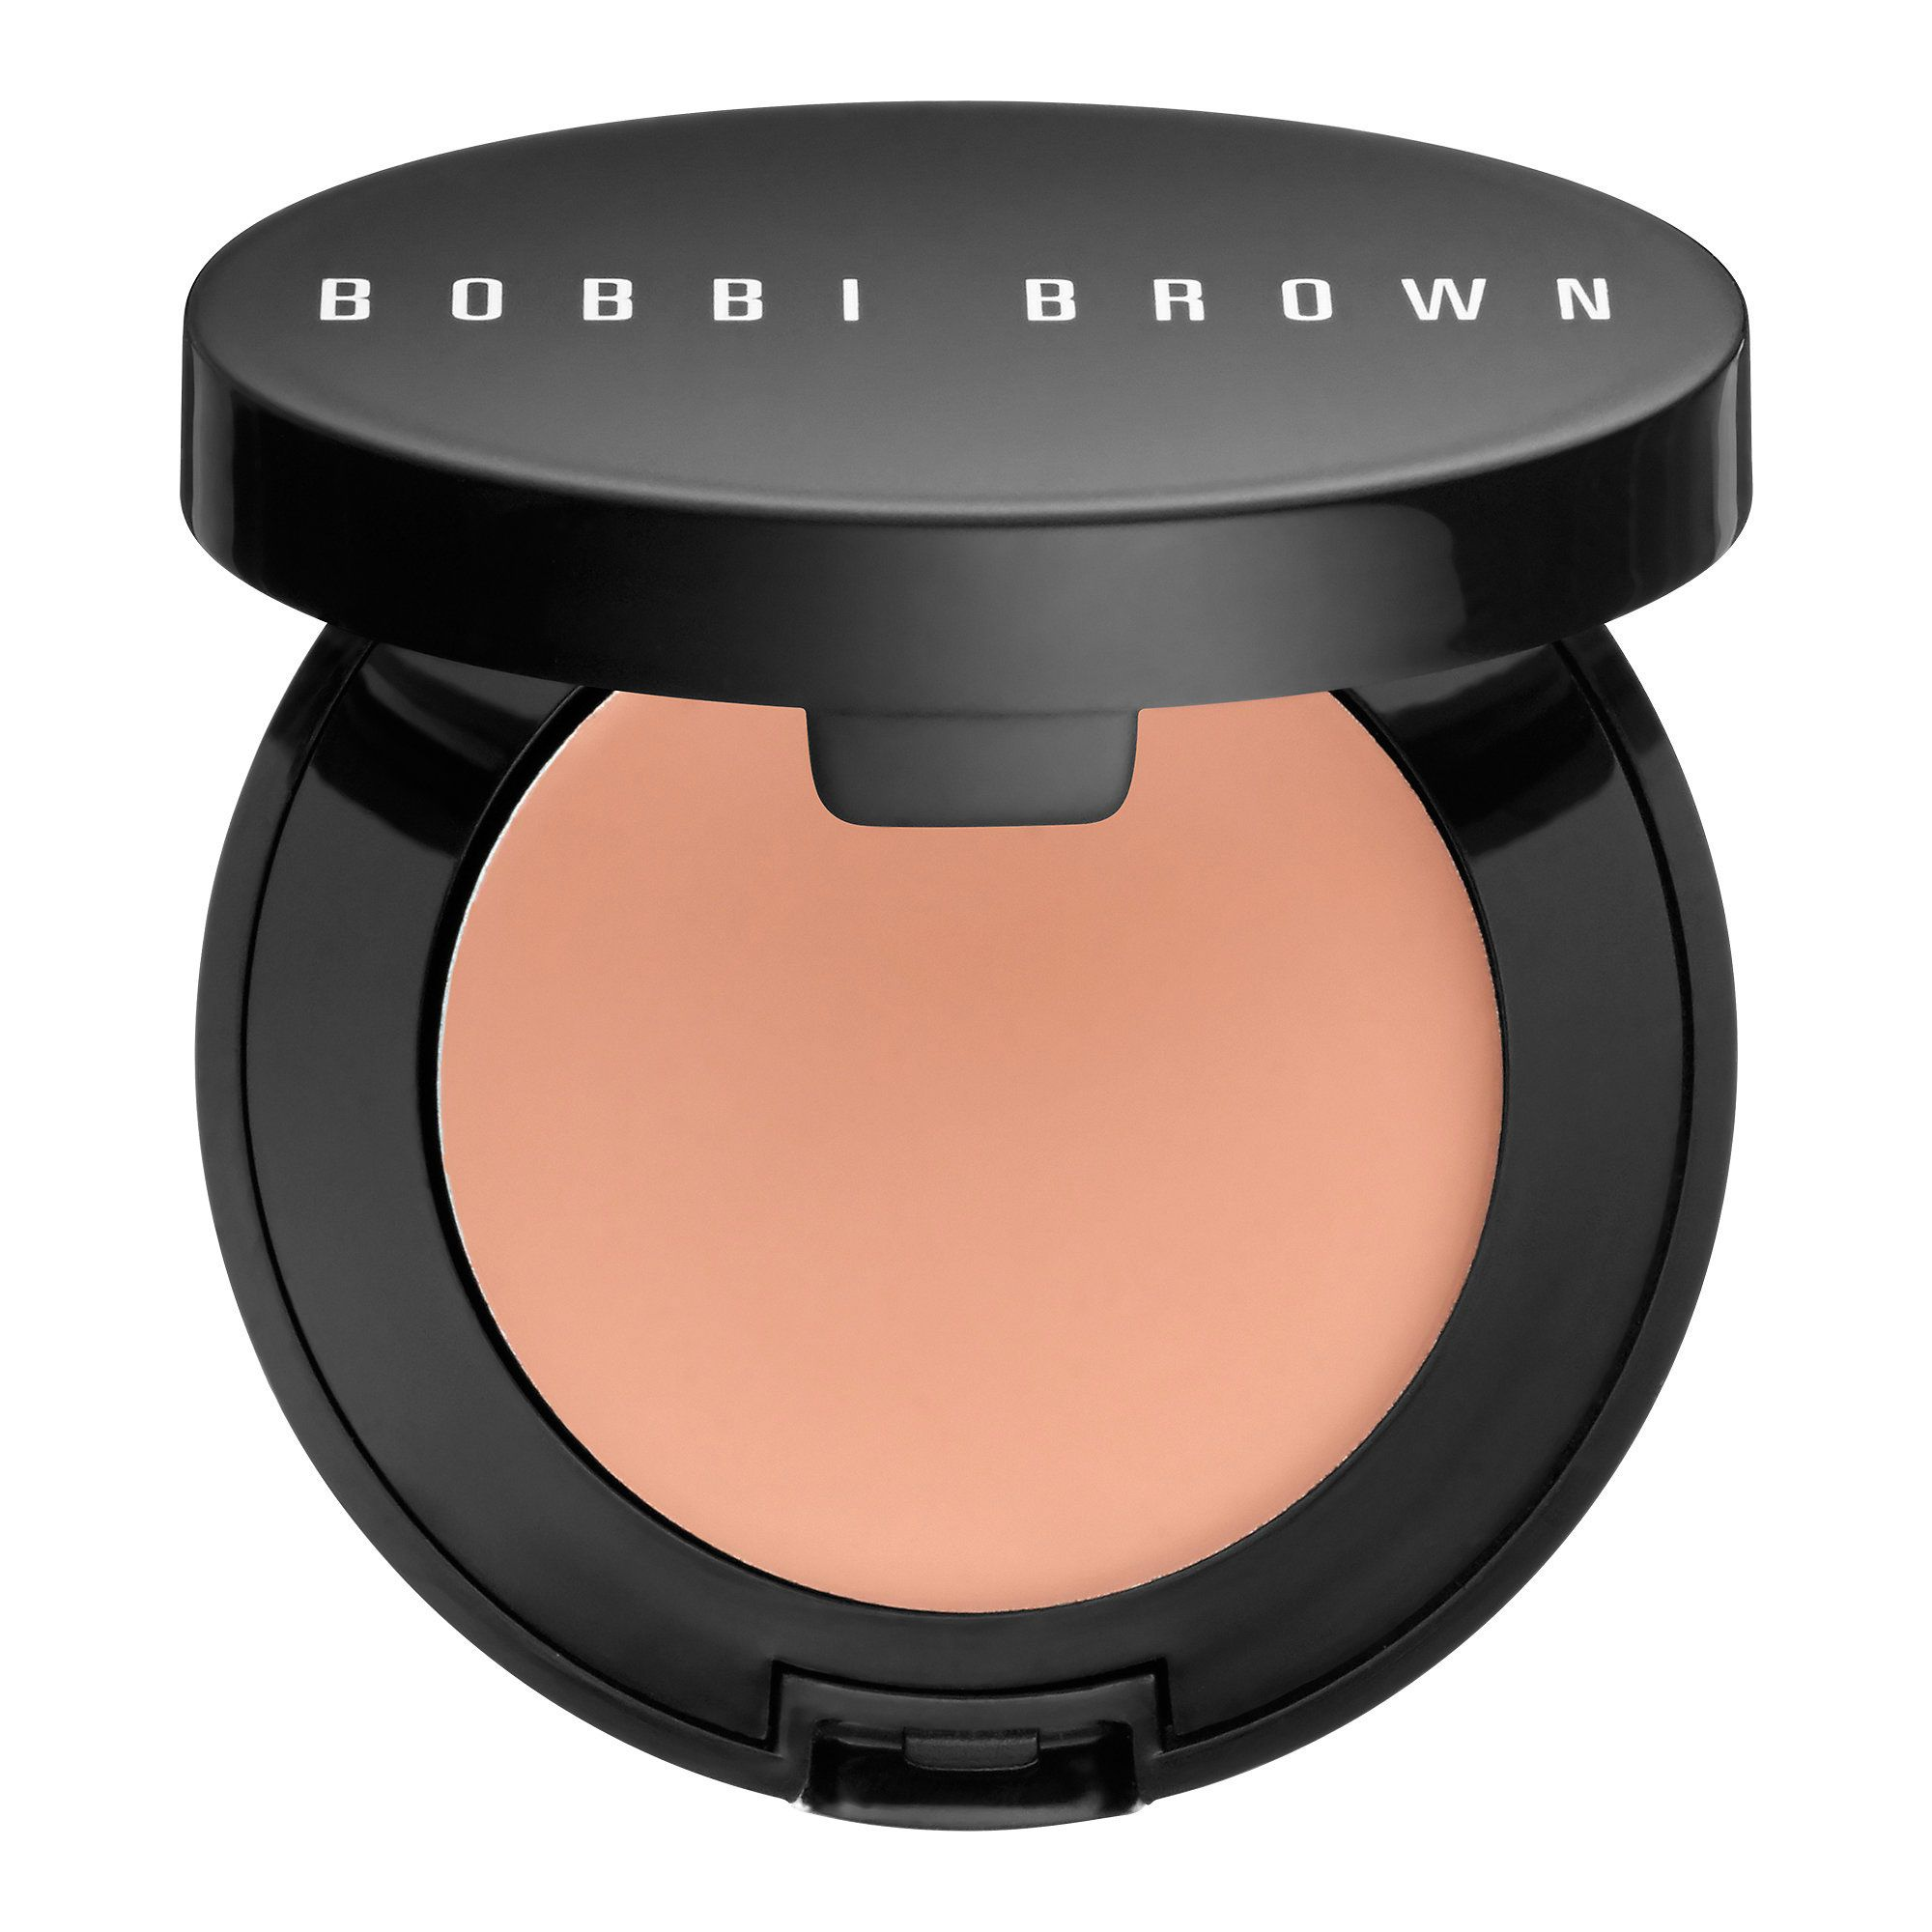 "<p>Concealers only lighten skin, so apply an under-eye corrector first to hide the tones in dark circles. Peach nixes bluish shadows, yellow covers purple ones, and orange masks brown circles. ""Dab on the corrector with a damp makeup sponge, then add your concealer on top,"" says makeup artist Jamie Greenberg, who works with Rashida Jones. (Try Bobbi Brown Corrector, $25; <a href=""http://www.sephora.com/corrector-P270555"" target=""_blank"" data-tracking-id=""recirc-text-link"">sephora.com</a><span class=""redactor-invisible-space""></span>.)<span class=""redactor-invisible-space""></span></p>"